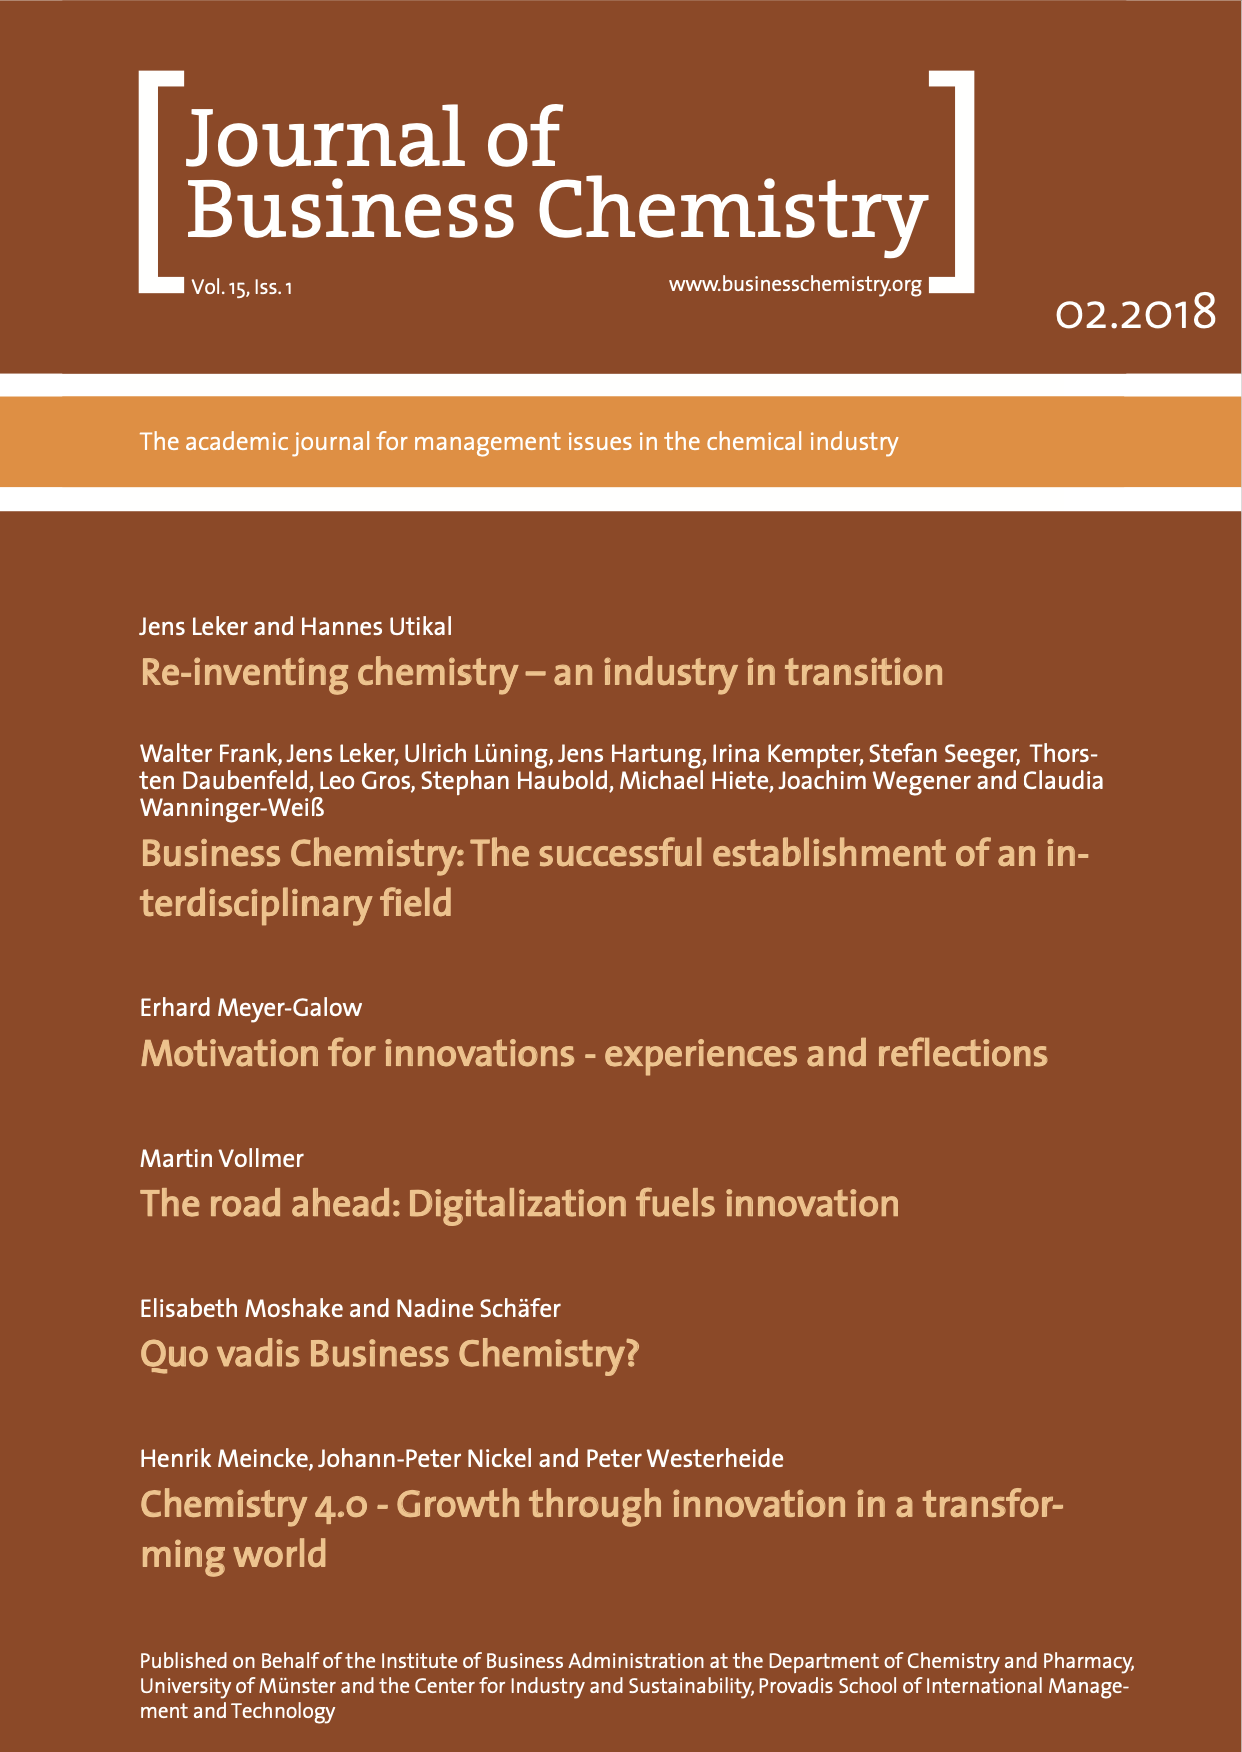 Journal of Business Chemistry February 2018